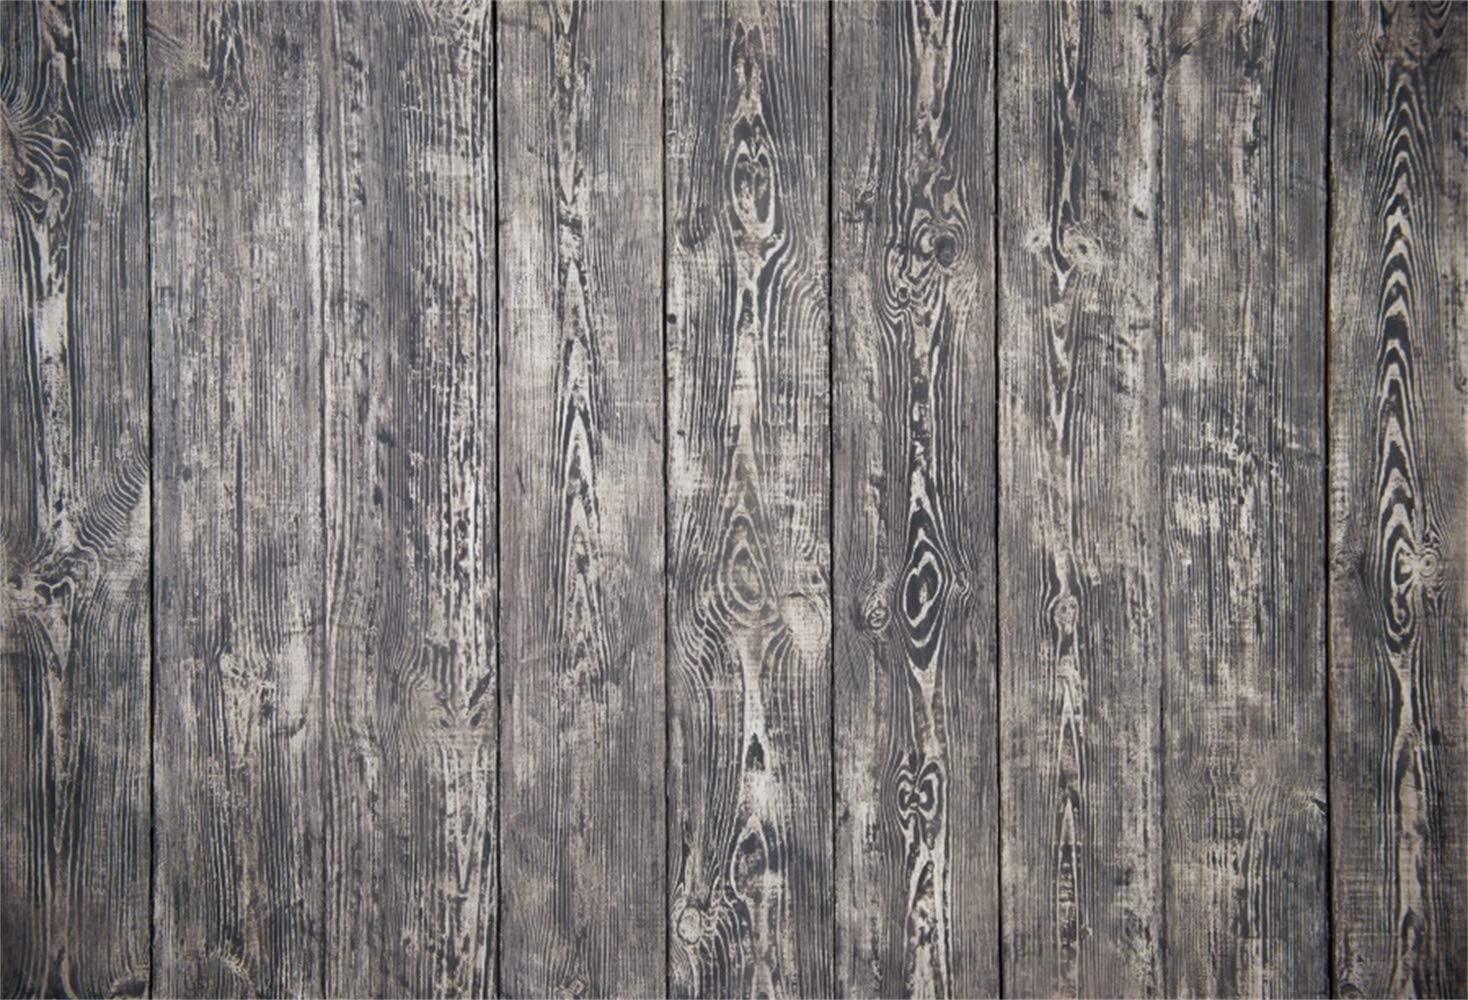 10x15ft Customizable Vinyl Wood Photography Backdrops Indoor Outdoor White Retro Wooden Floor and Wall Wood Plank Texture Background Portrait Photo Booth Studio Prop Theme Wedding Decoration